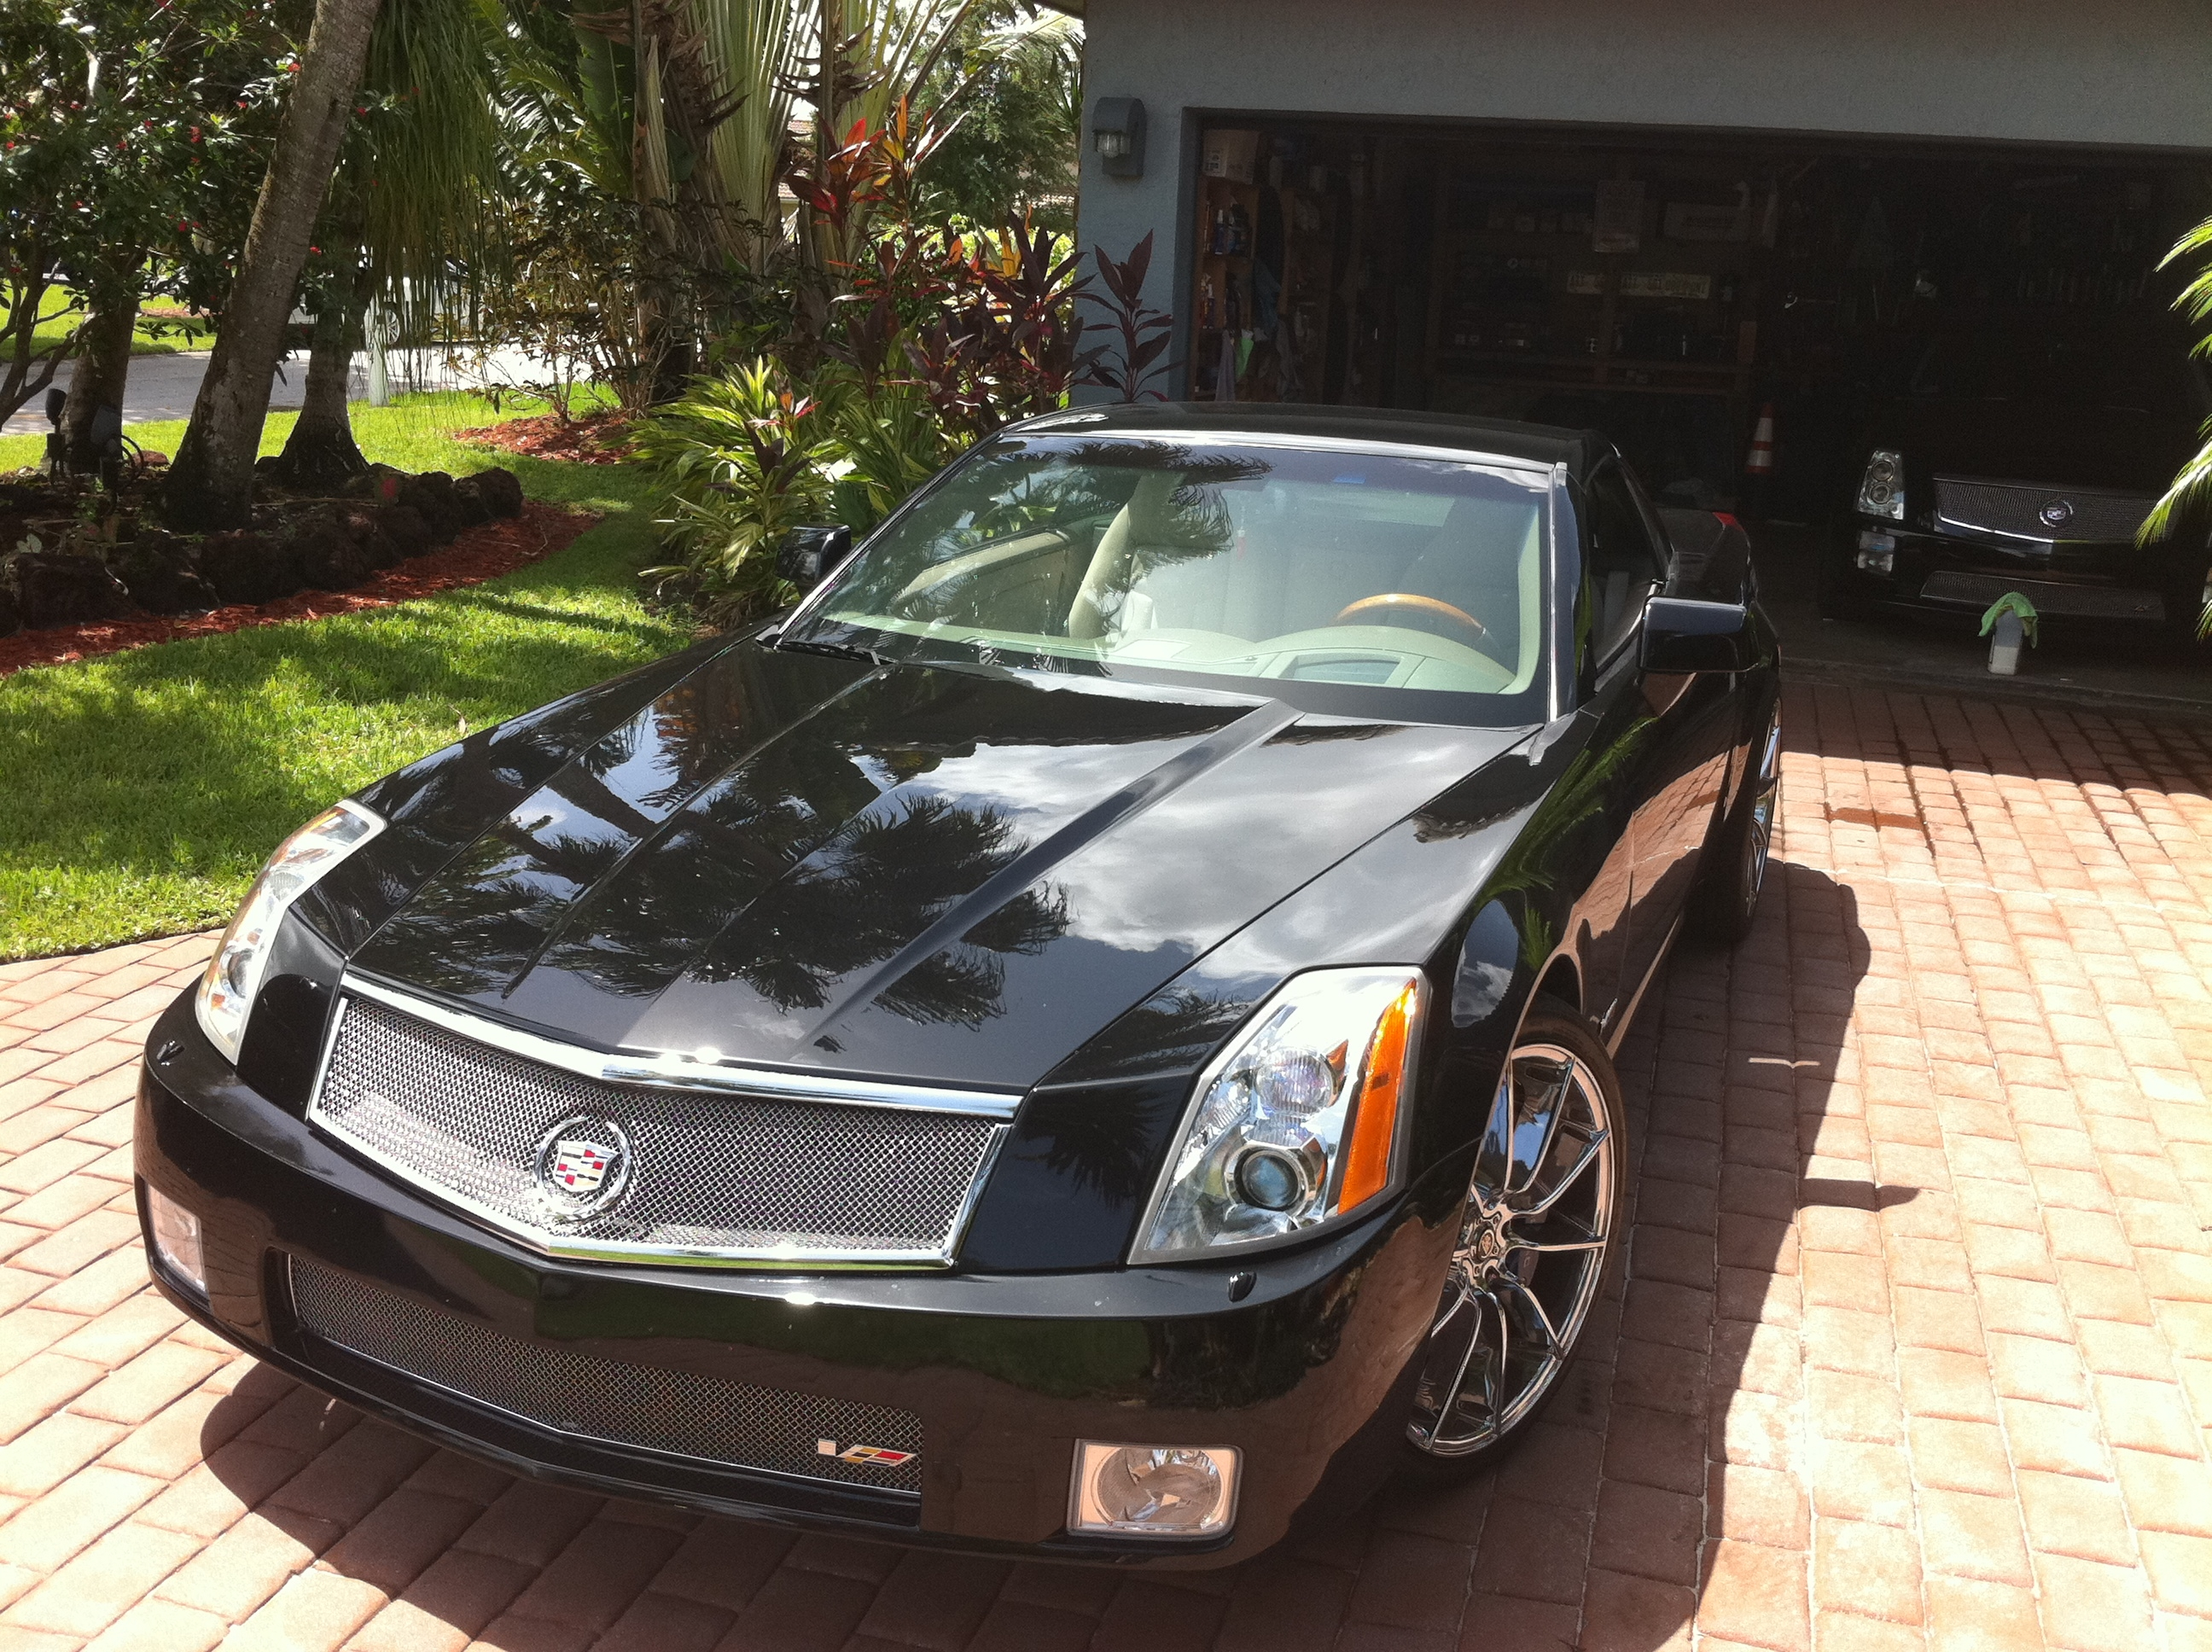 denali lq 2006 cadillac xlr specs photos modification. Black Bedroom Furniture Sets. Home Design Ideas